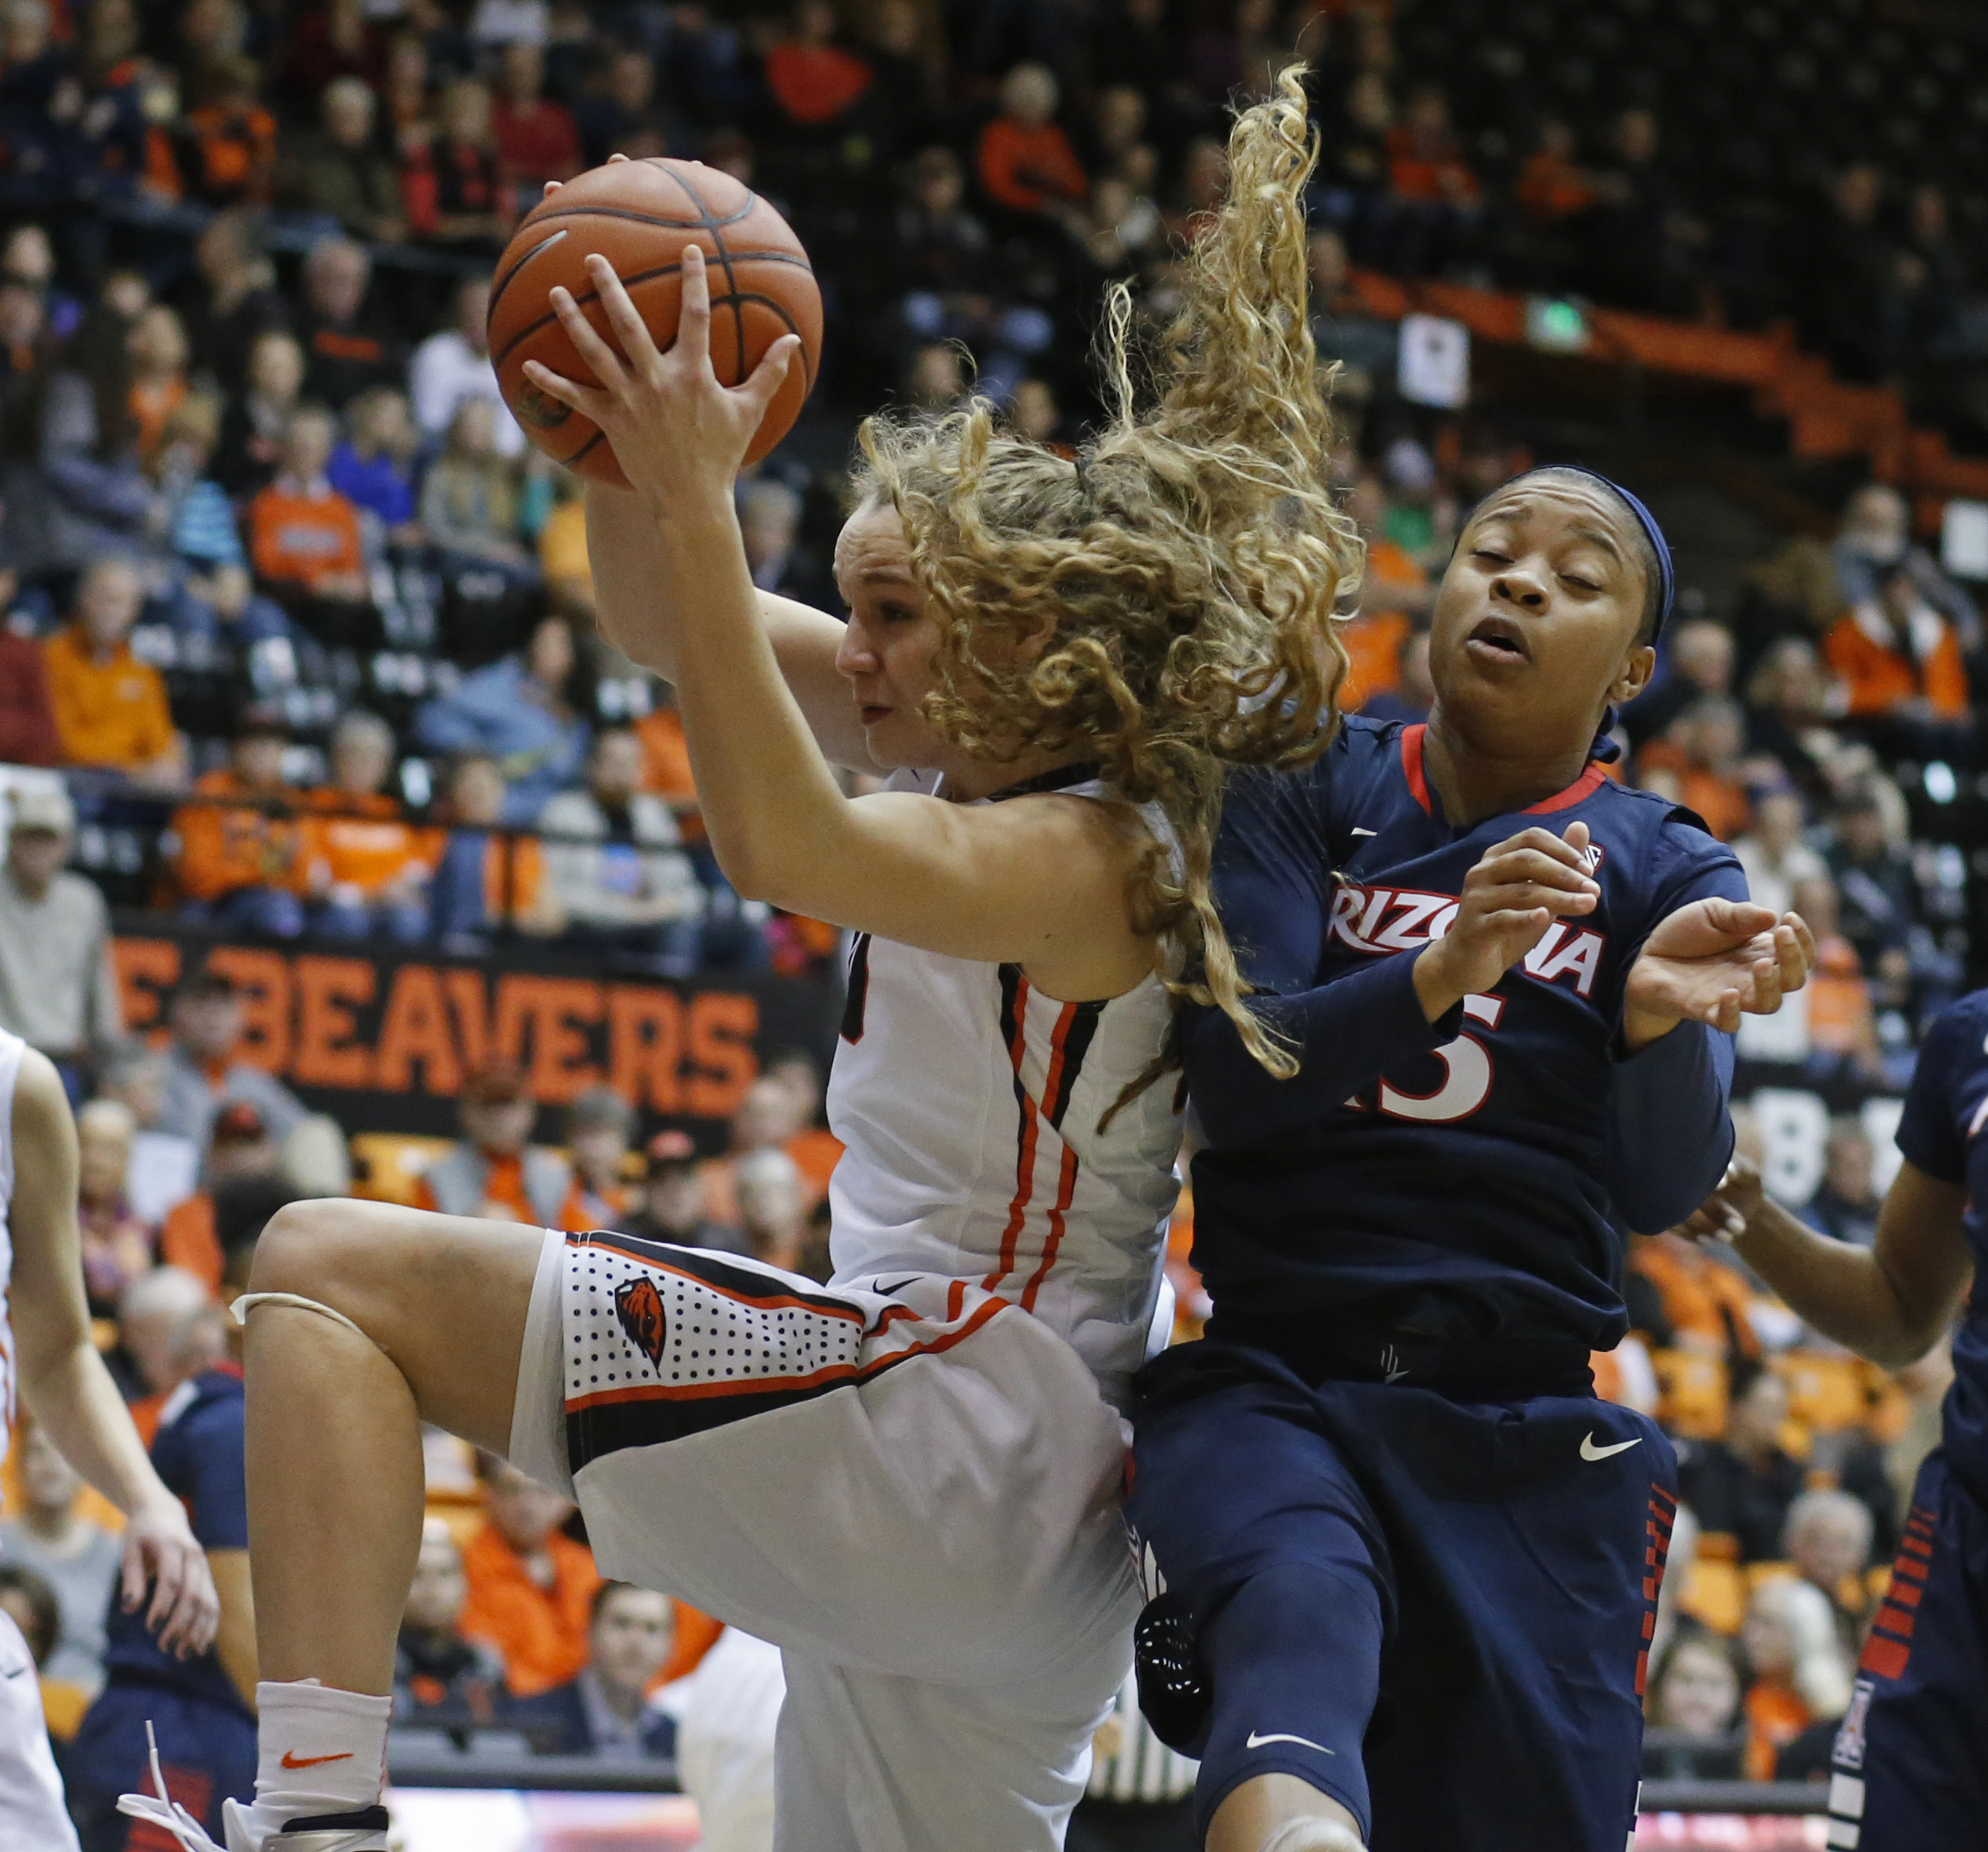 Oregon State's Katie McWilliams, left, grabs a rebound away from Arizona's Keyahndra Cannon in the first half of an NCAA college basketball game in Corvallis, Ore., on Friday, Jan. 29, 2016. (AP Photo/Timothy J. Gonzalez)